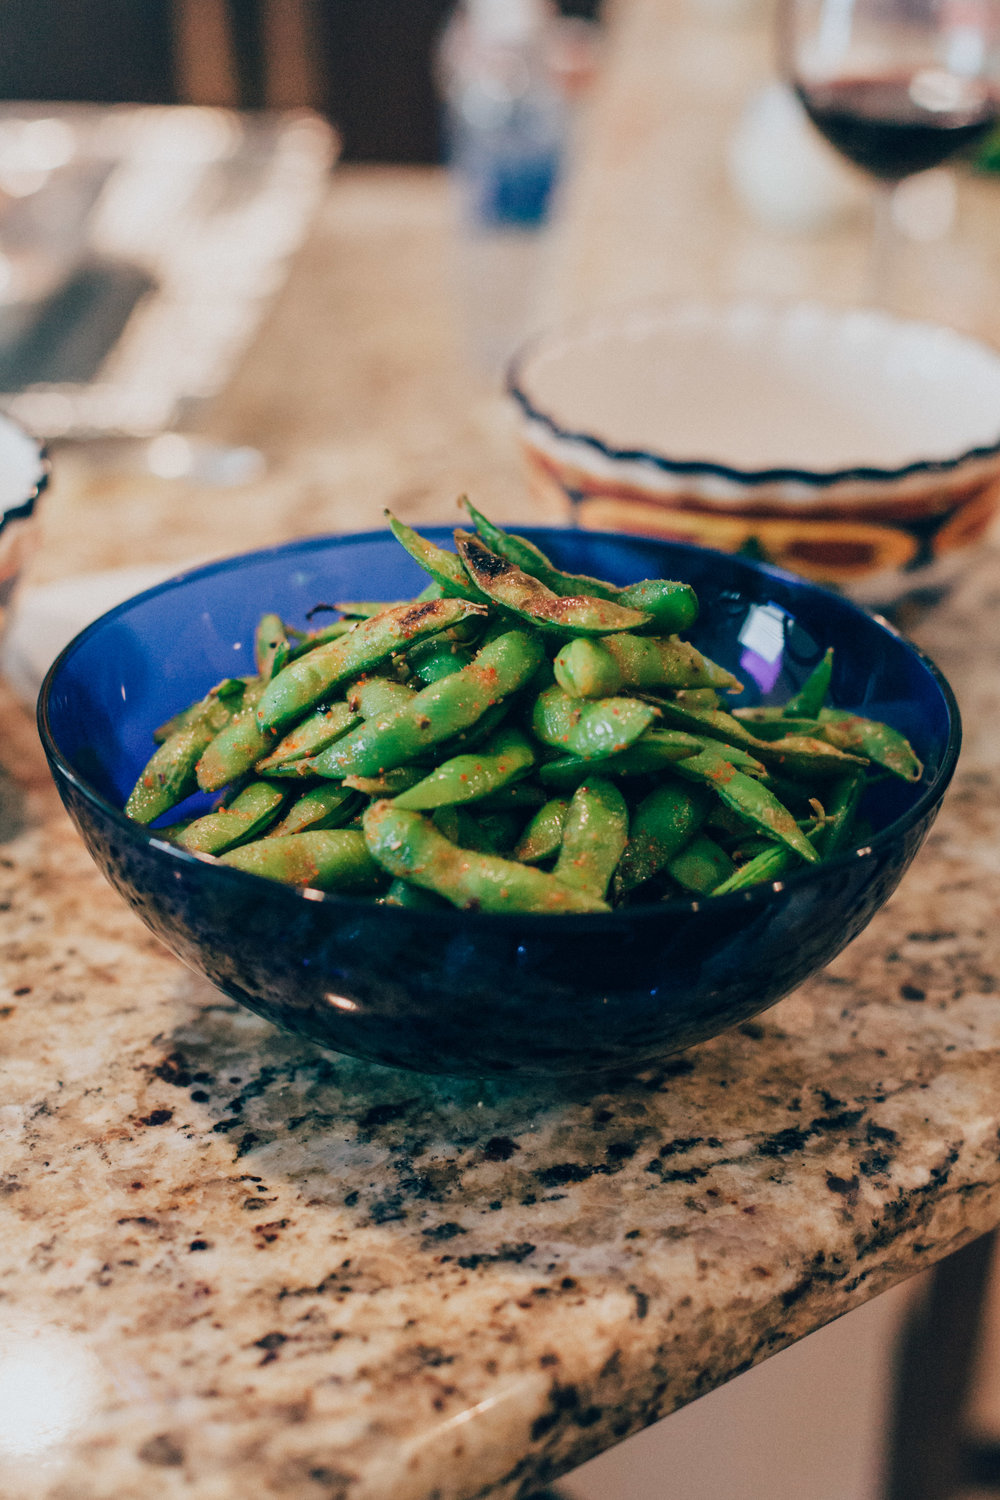 Chef Chanse's special roasted edamame